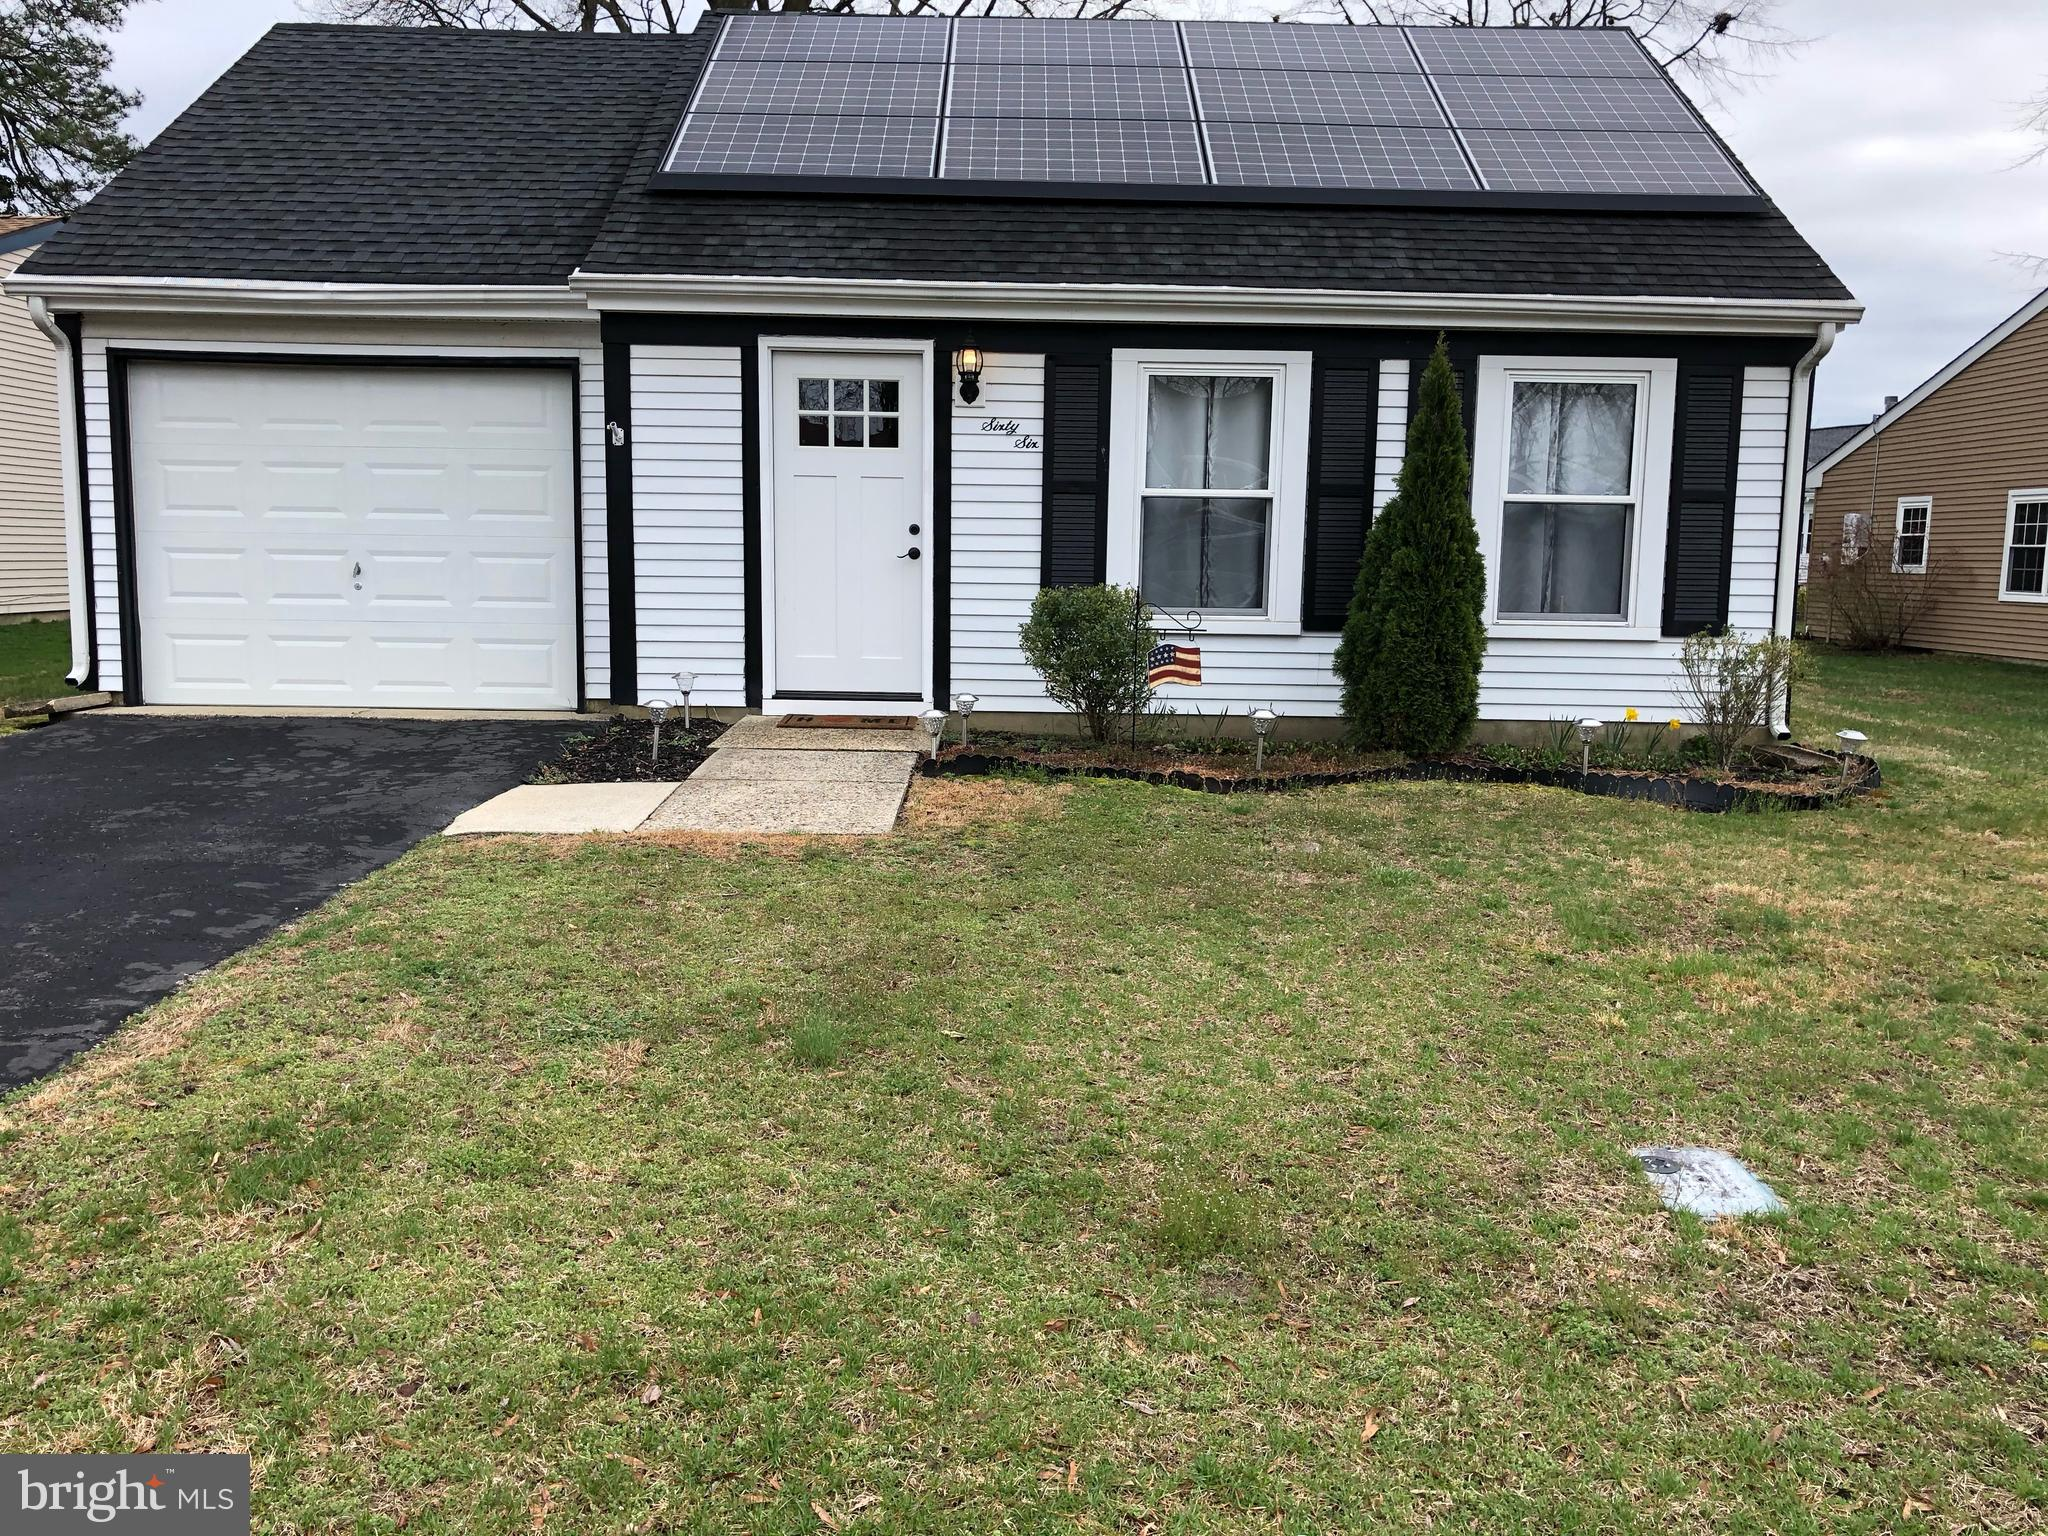 Nicely Updated Chatham Model with Solar -  2 Bedrooms 1 Bath Stainless Steel Appliances, Granite Countertops with Maple Cabinets Newer Roof and A/C Laminate flooring throughout Living, Dining, hallway and Kitchen Carpet in Bedrooms Make Appointment today  - won't last long